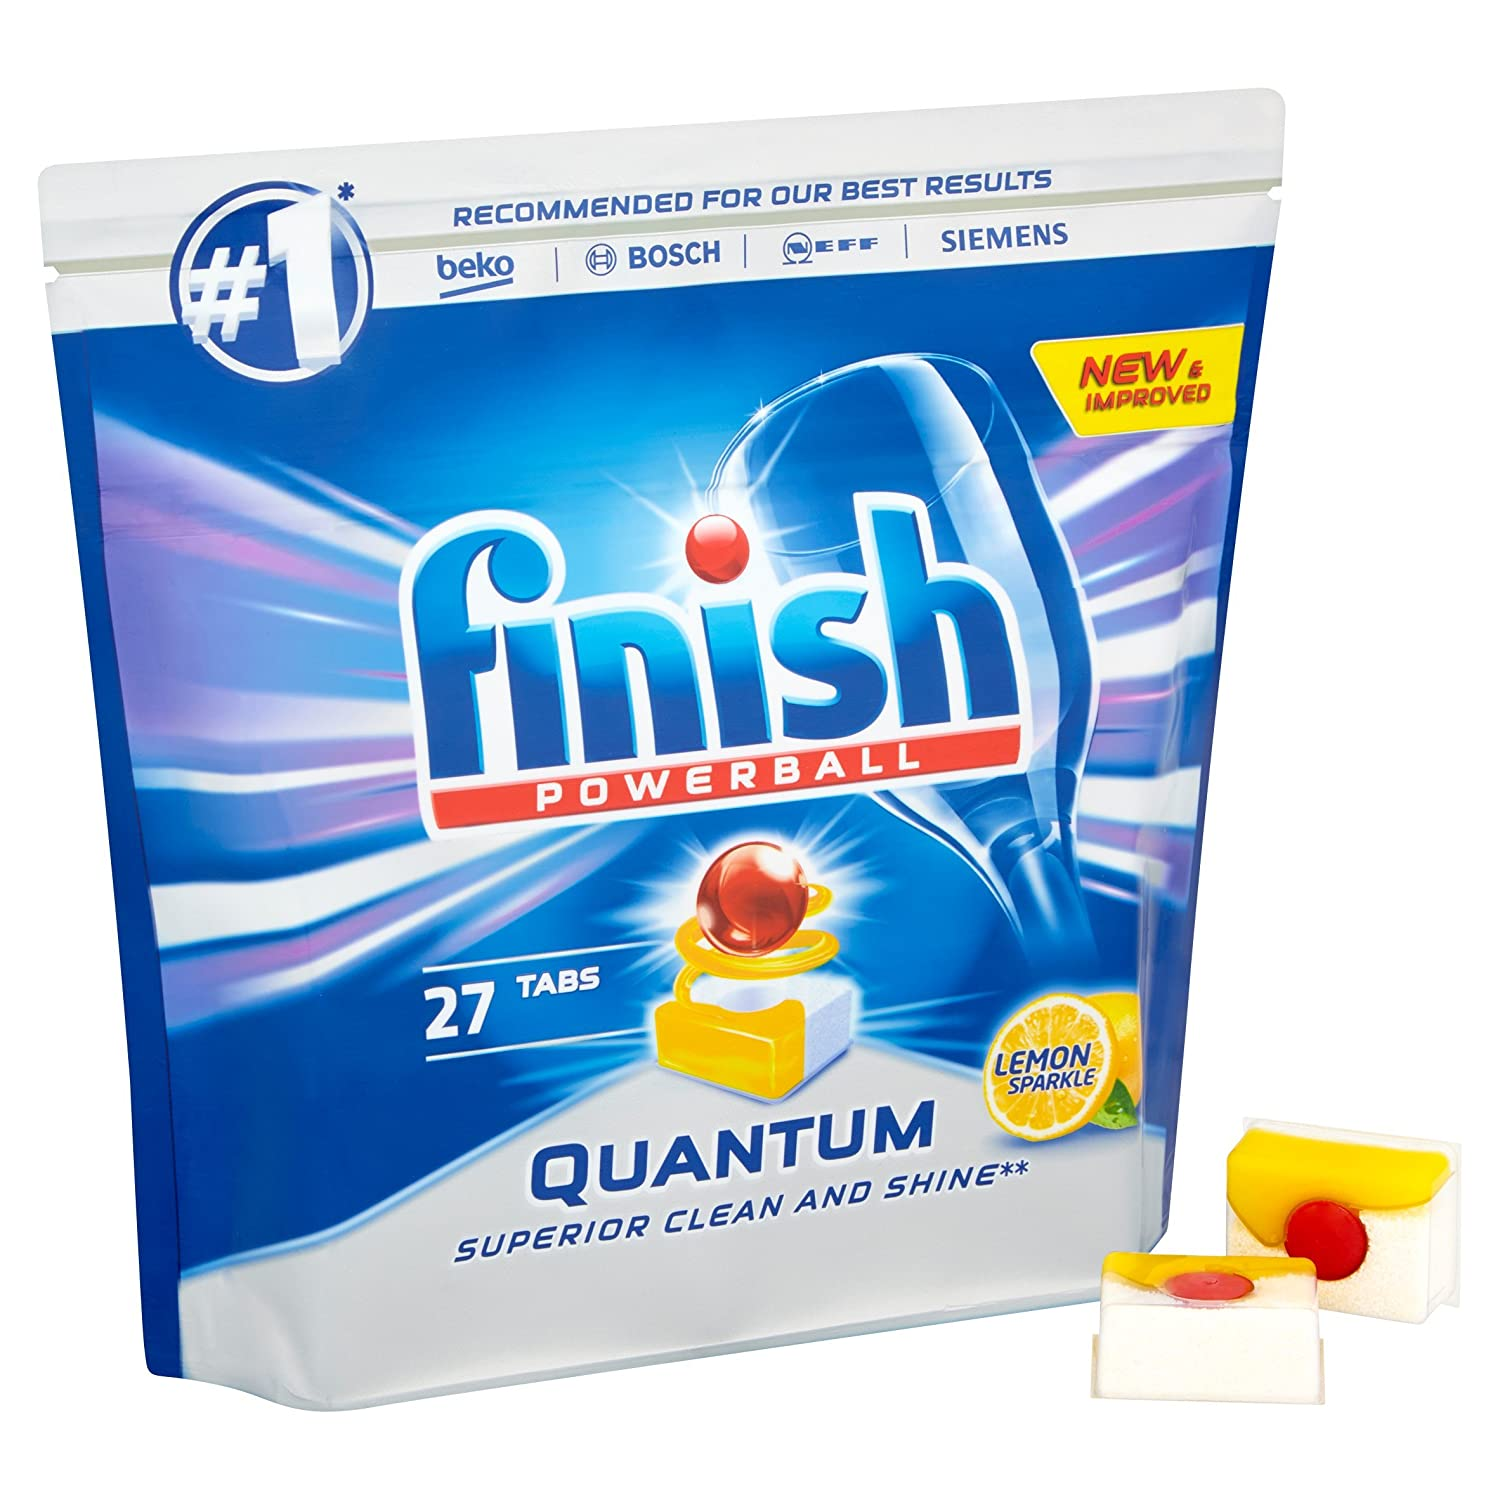 c79250c30db7 Finish Quantum Powerball Dishwasher Tablets, Lemon Sparkle, 8 x 27 (216  Tablets): Amazon.co.uk: Health & Personal Care